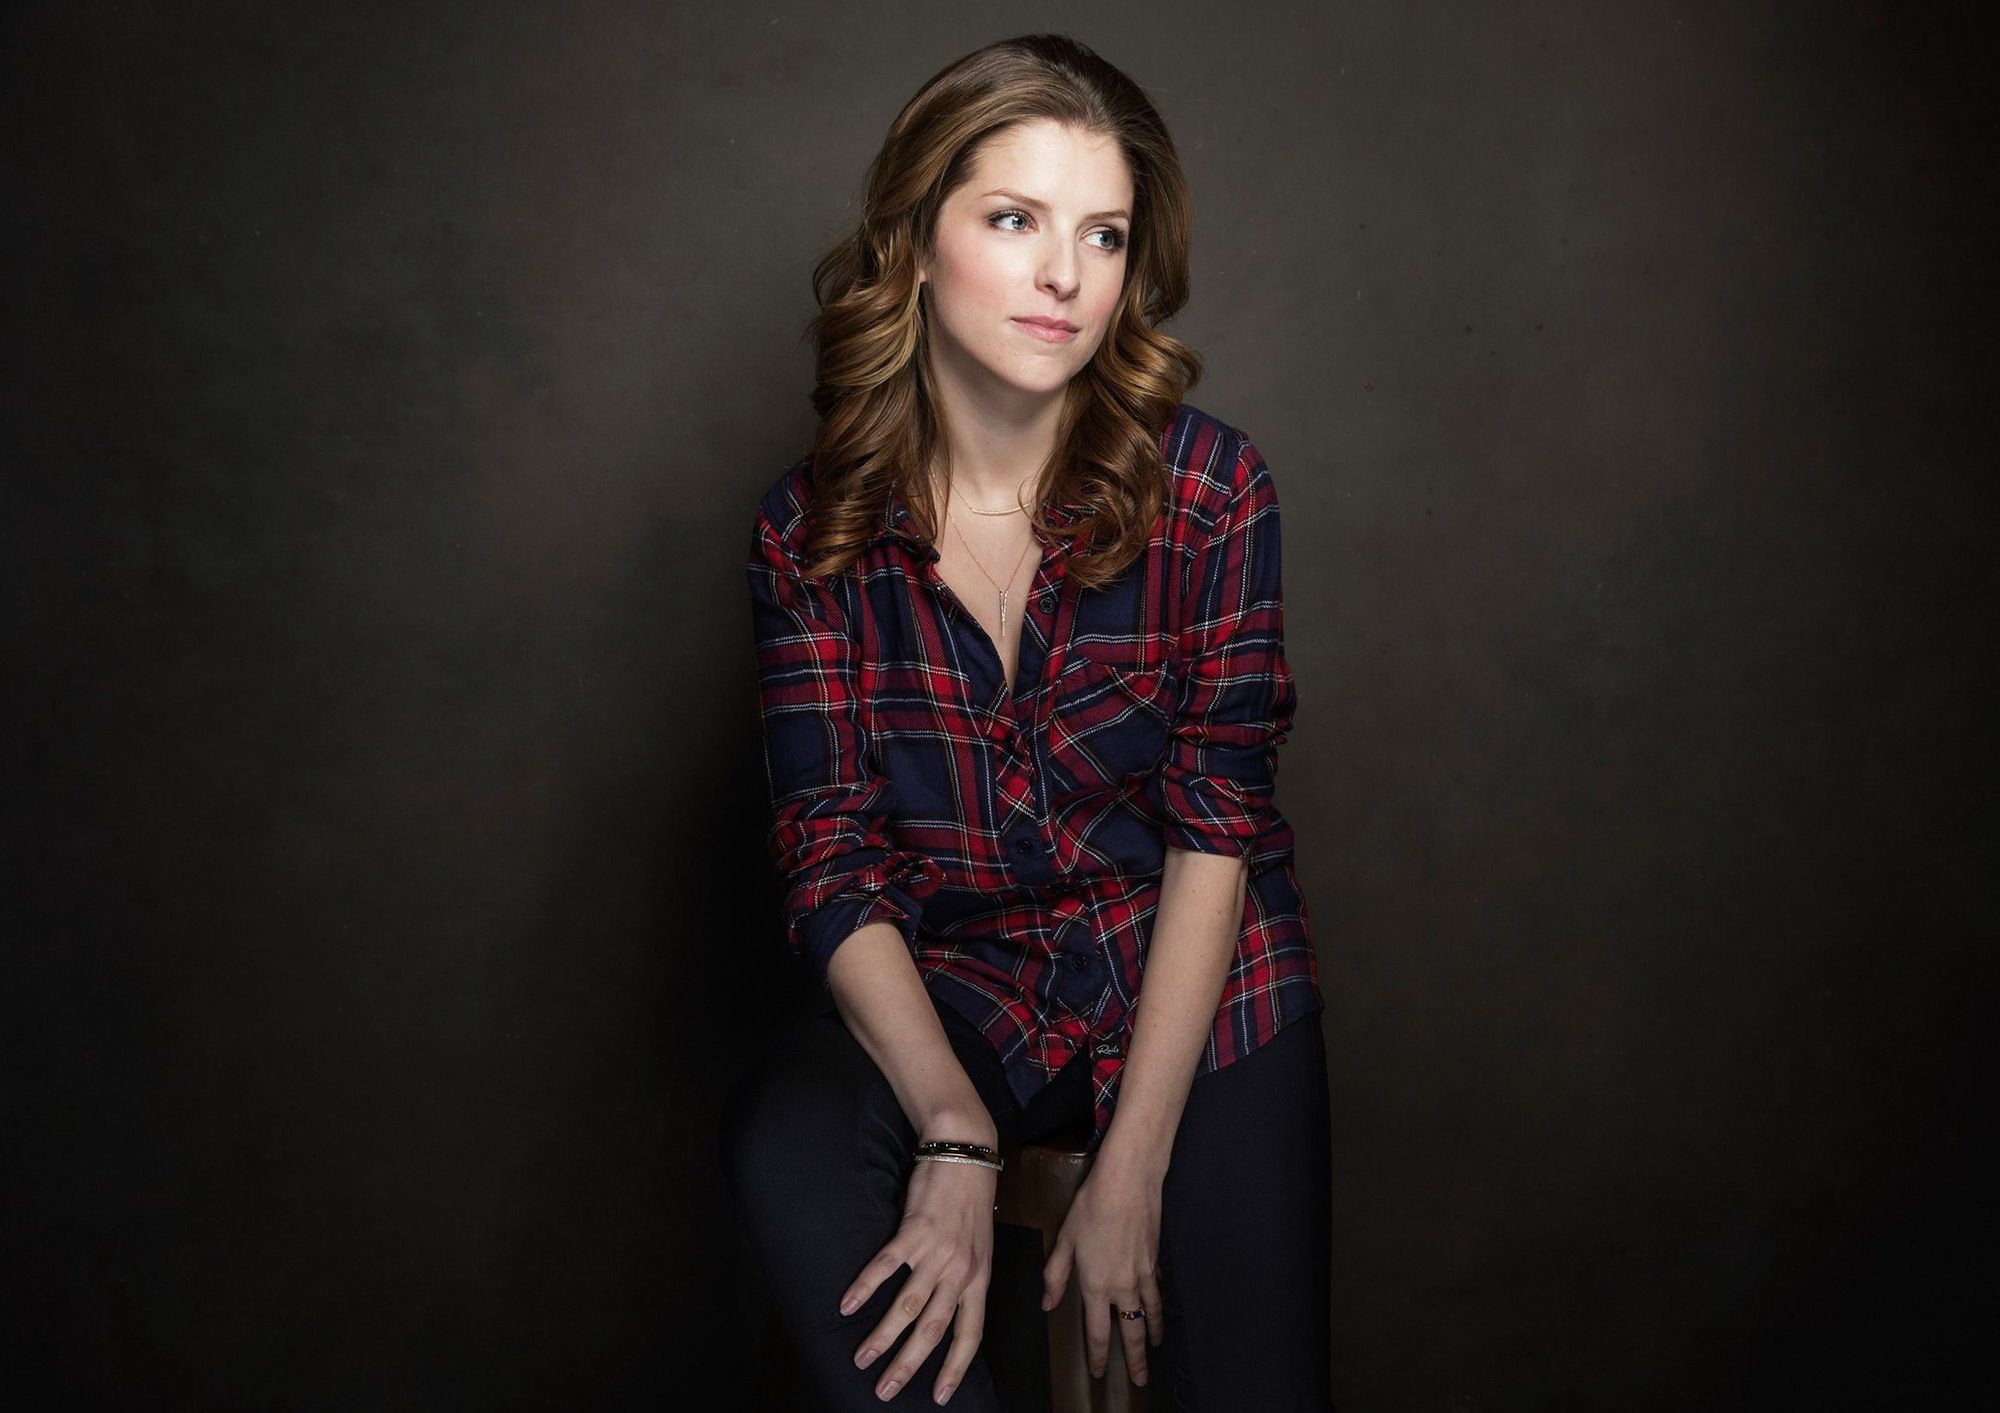 Anna Kendrick Wallpapers High Quality Download Free